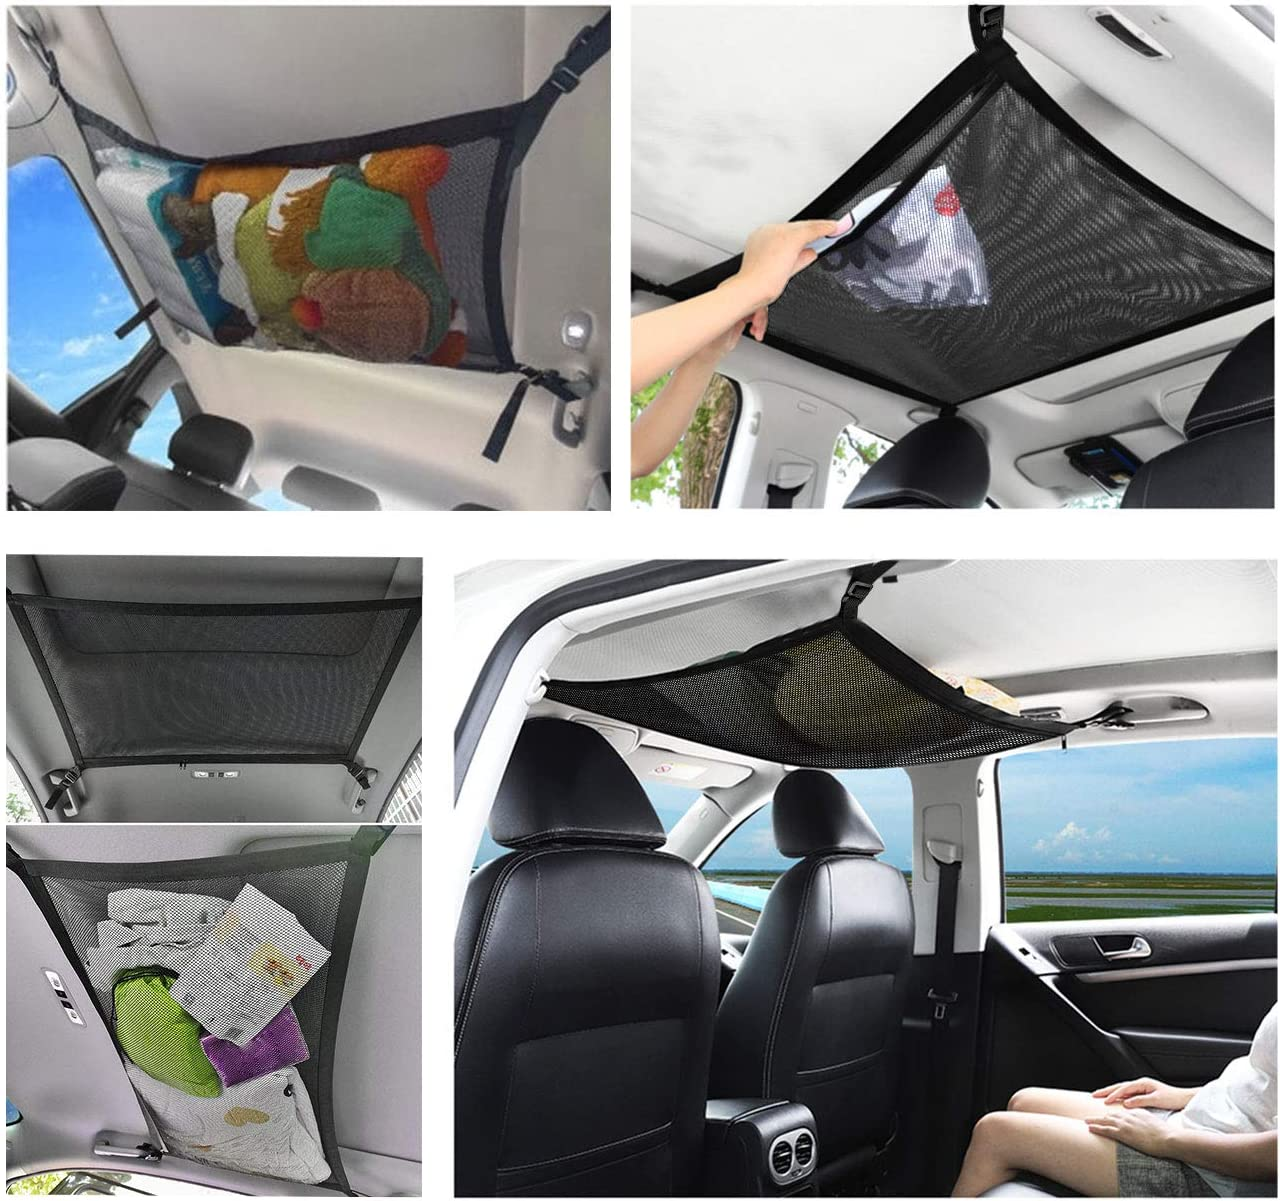 Black Car Ceiling Cargo Net Pocket,Universal Adjustable 2-Layer Car Roof Interior Sundries Storage Pouch with Zipper,Universal for Car SUV Truck Sundries Storage Pocket with Car Seat Hooks